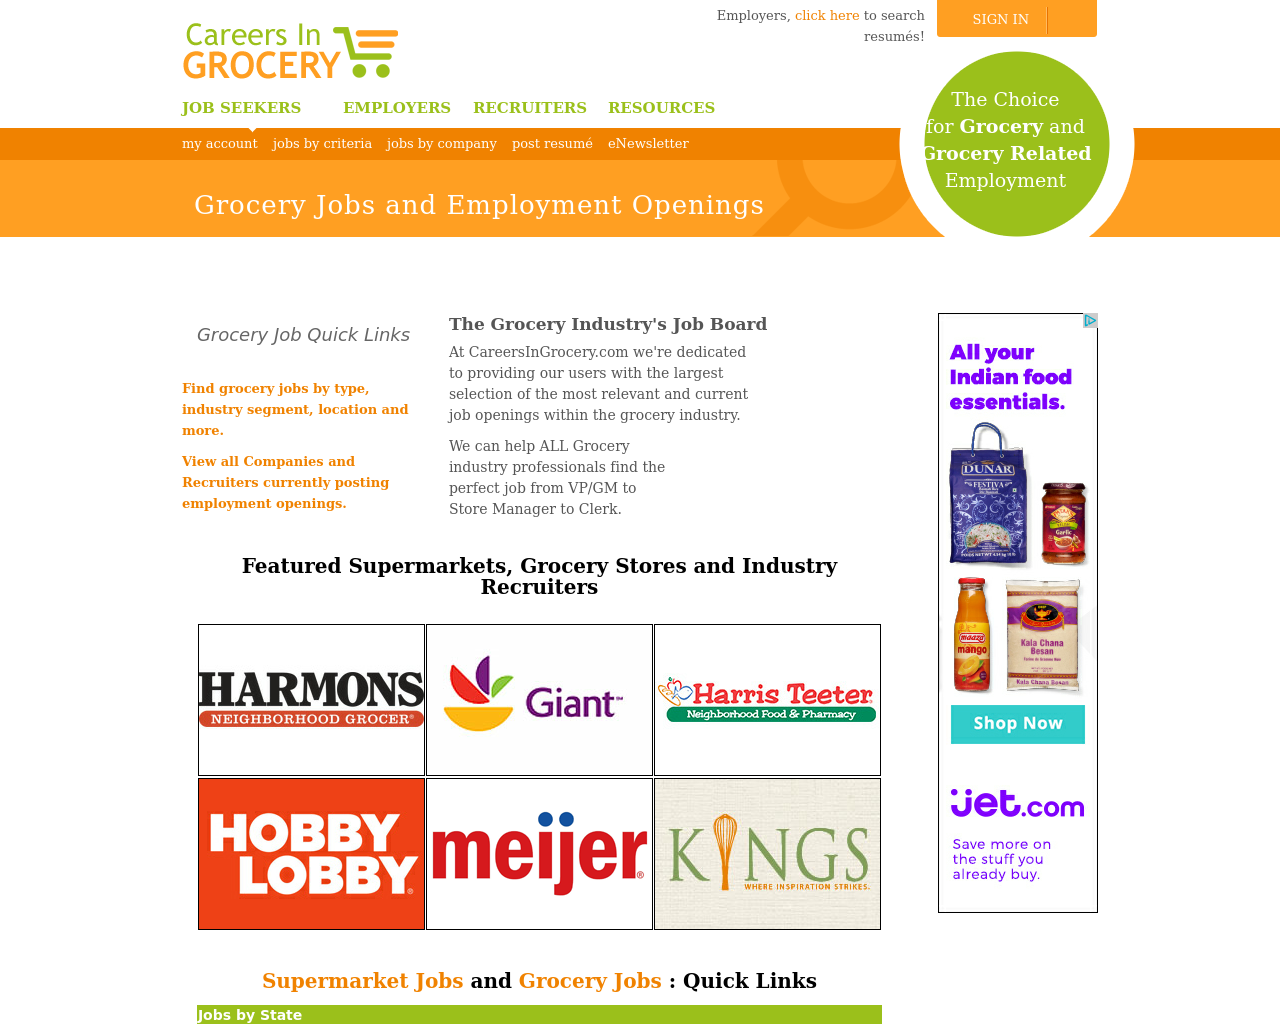 Careers-In-Grocery-Advertising-Reviews-Pricing